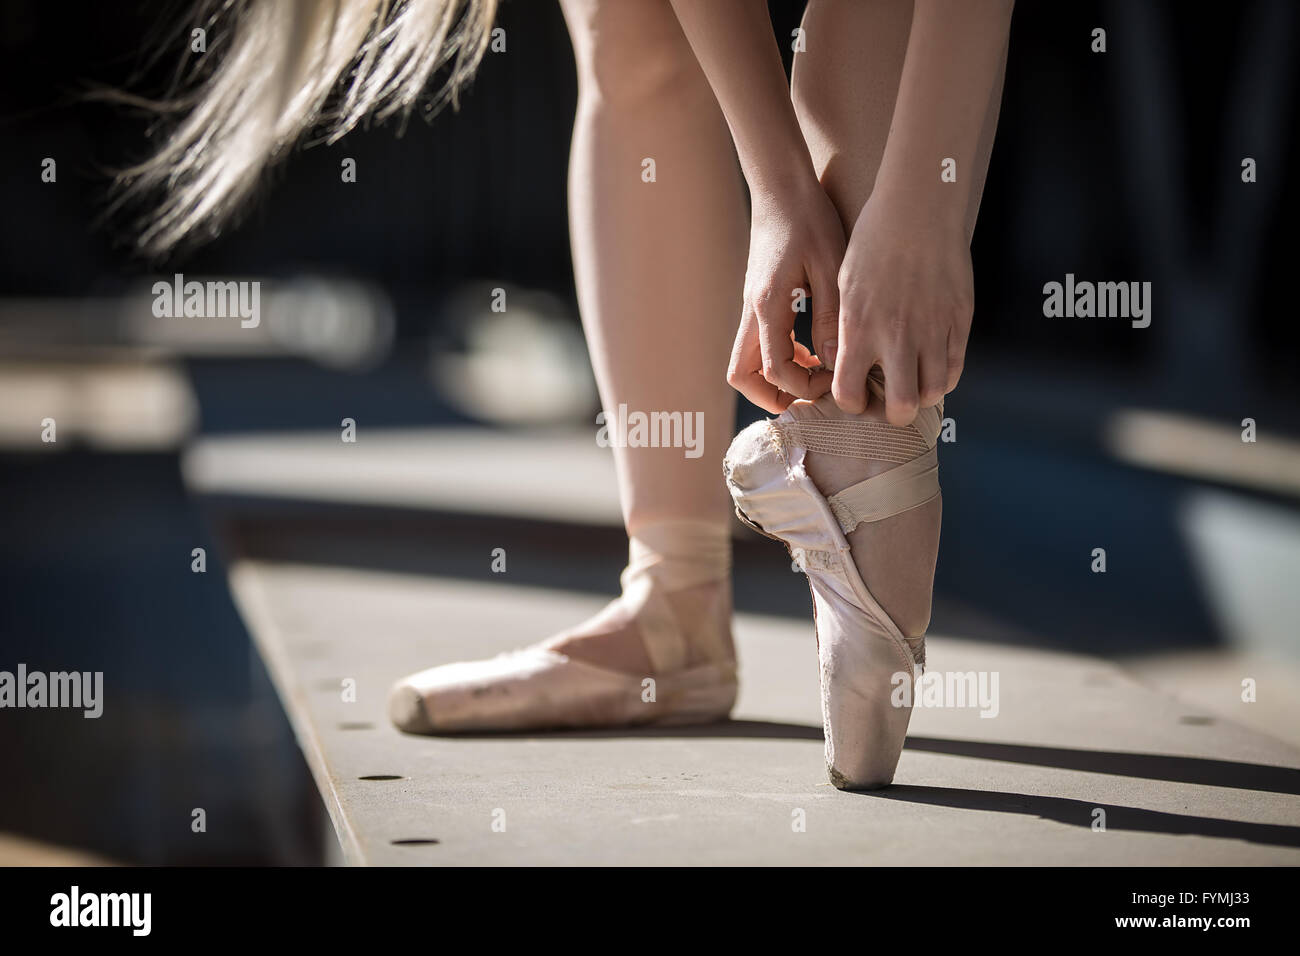 Dancer tying pointe shoes - Stock Image